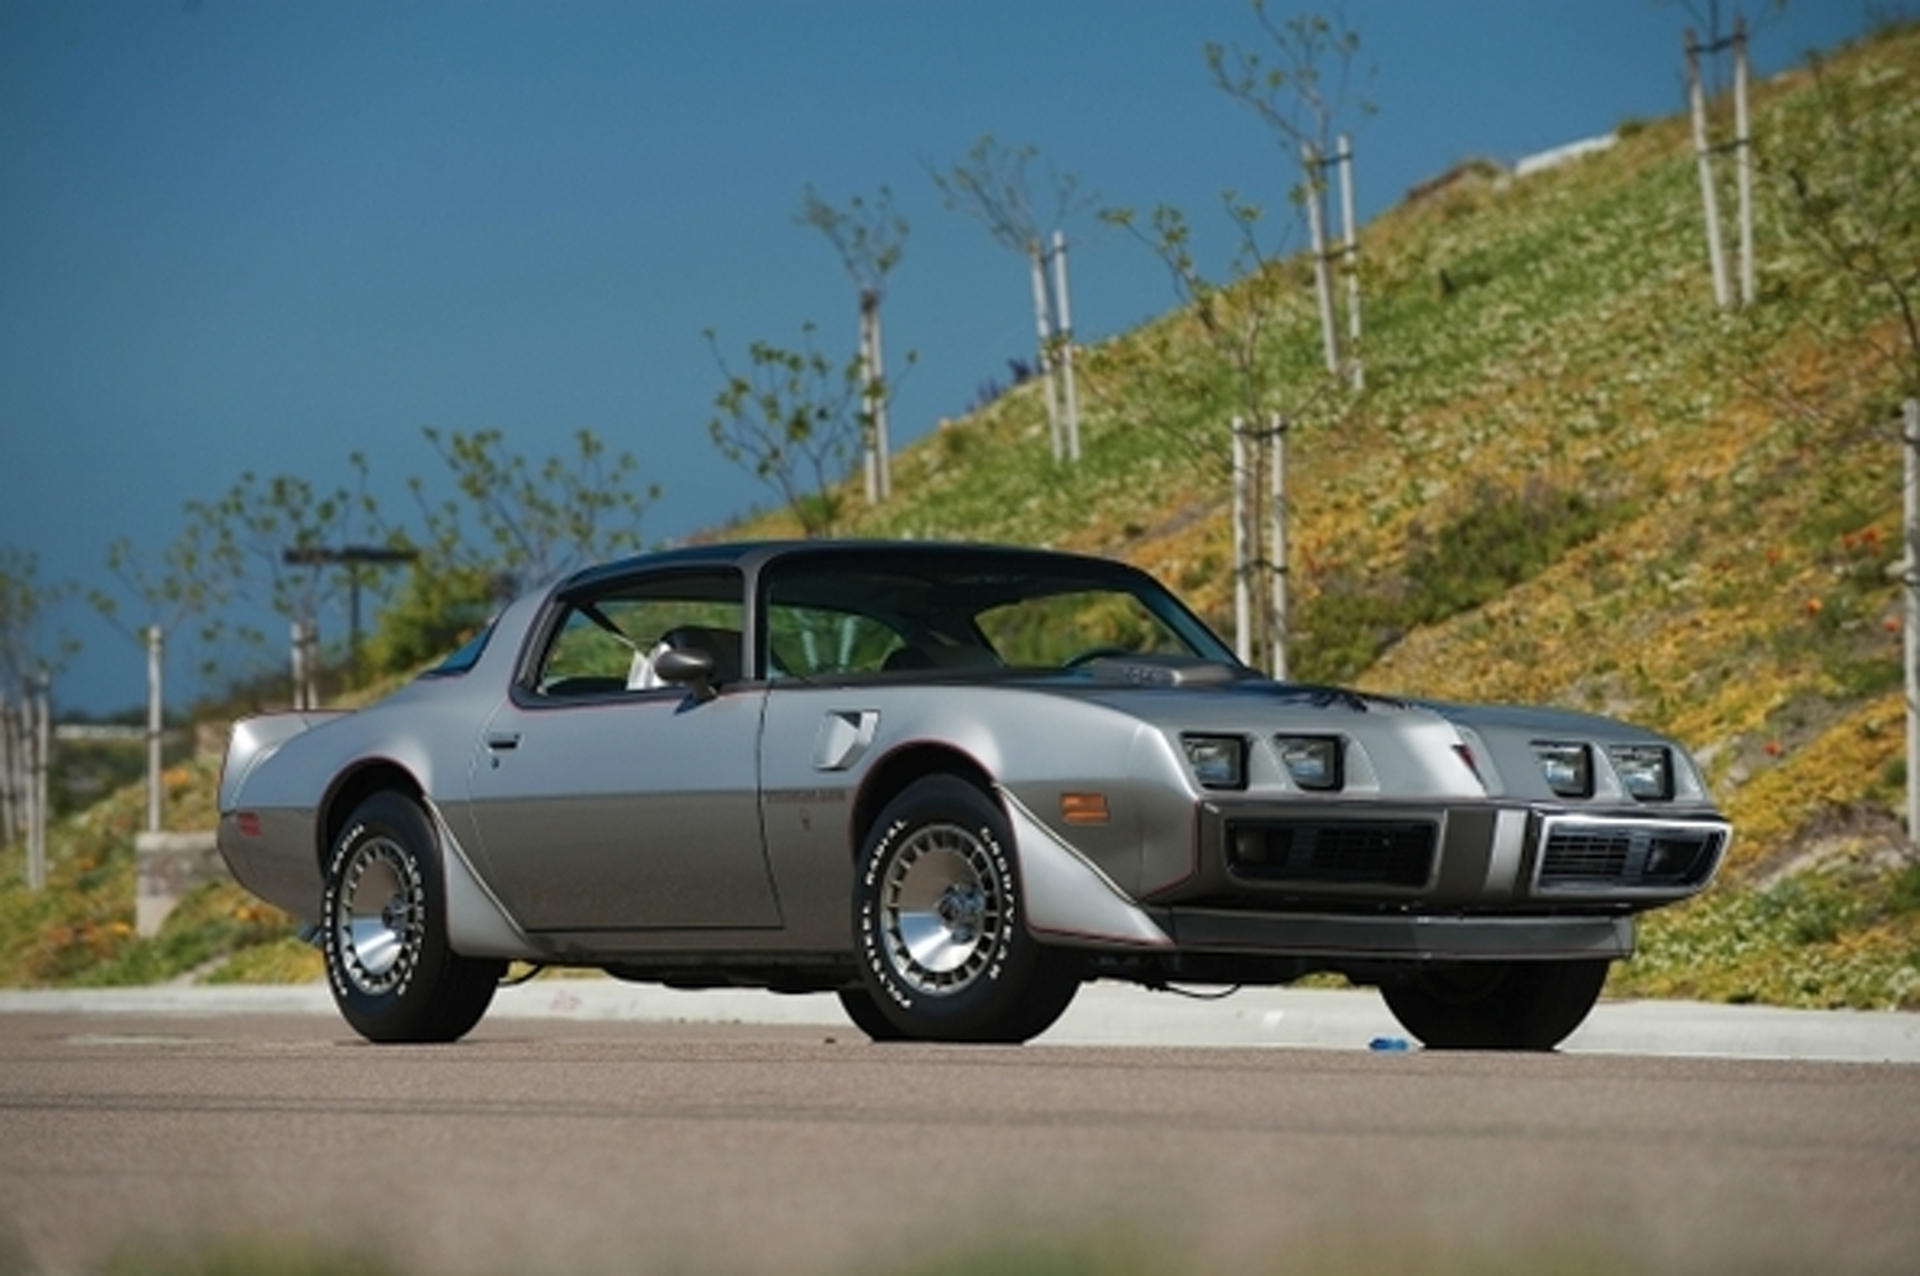 8 Forgotten Classic Cars of the 1980's We'd Want to Own